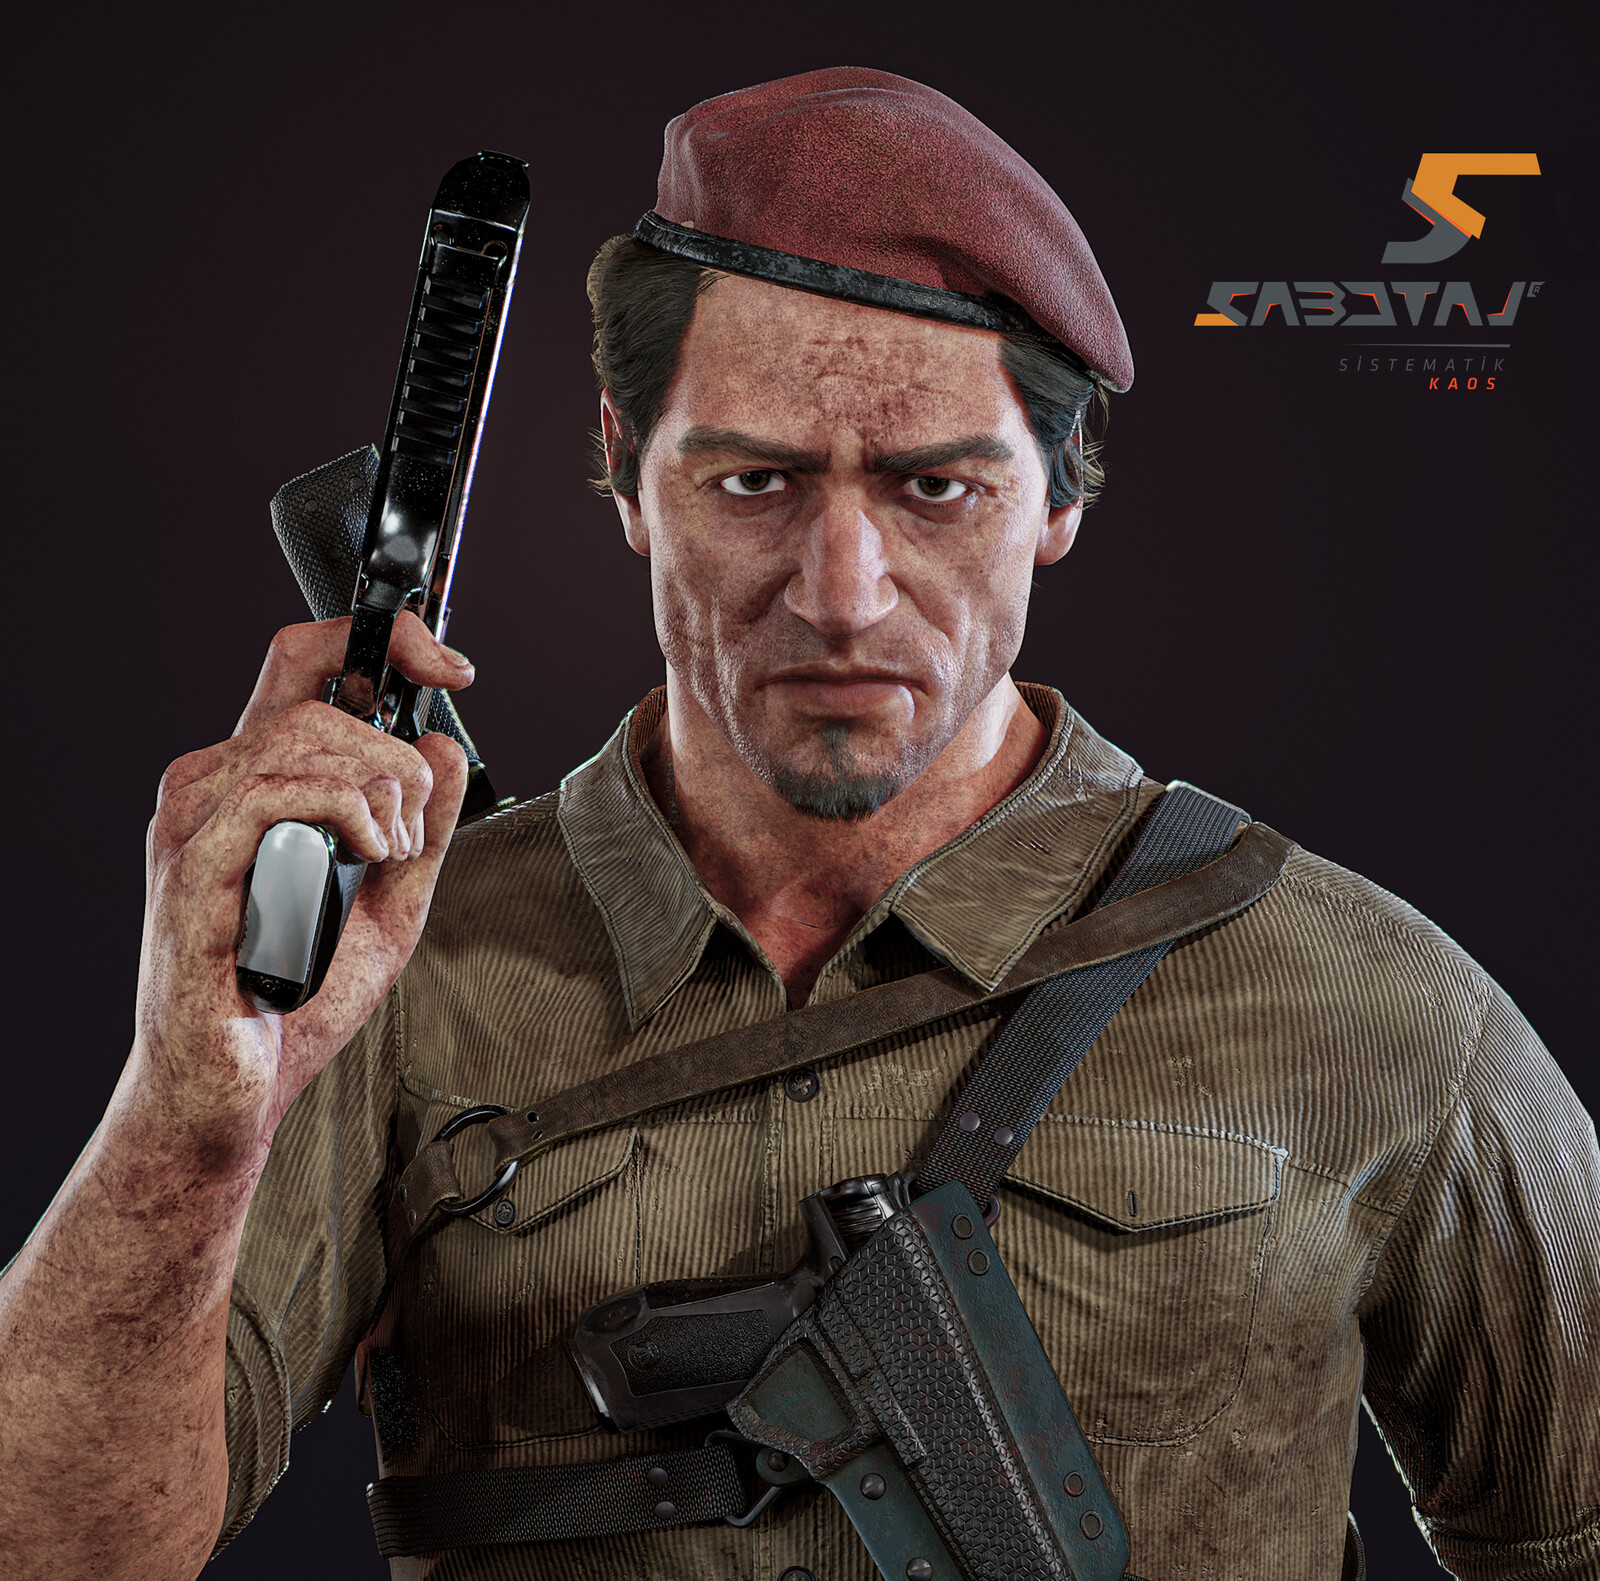 Oscar Character Art for Sabotaj (Sabotage) MMO FPS Game